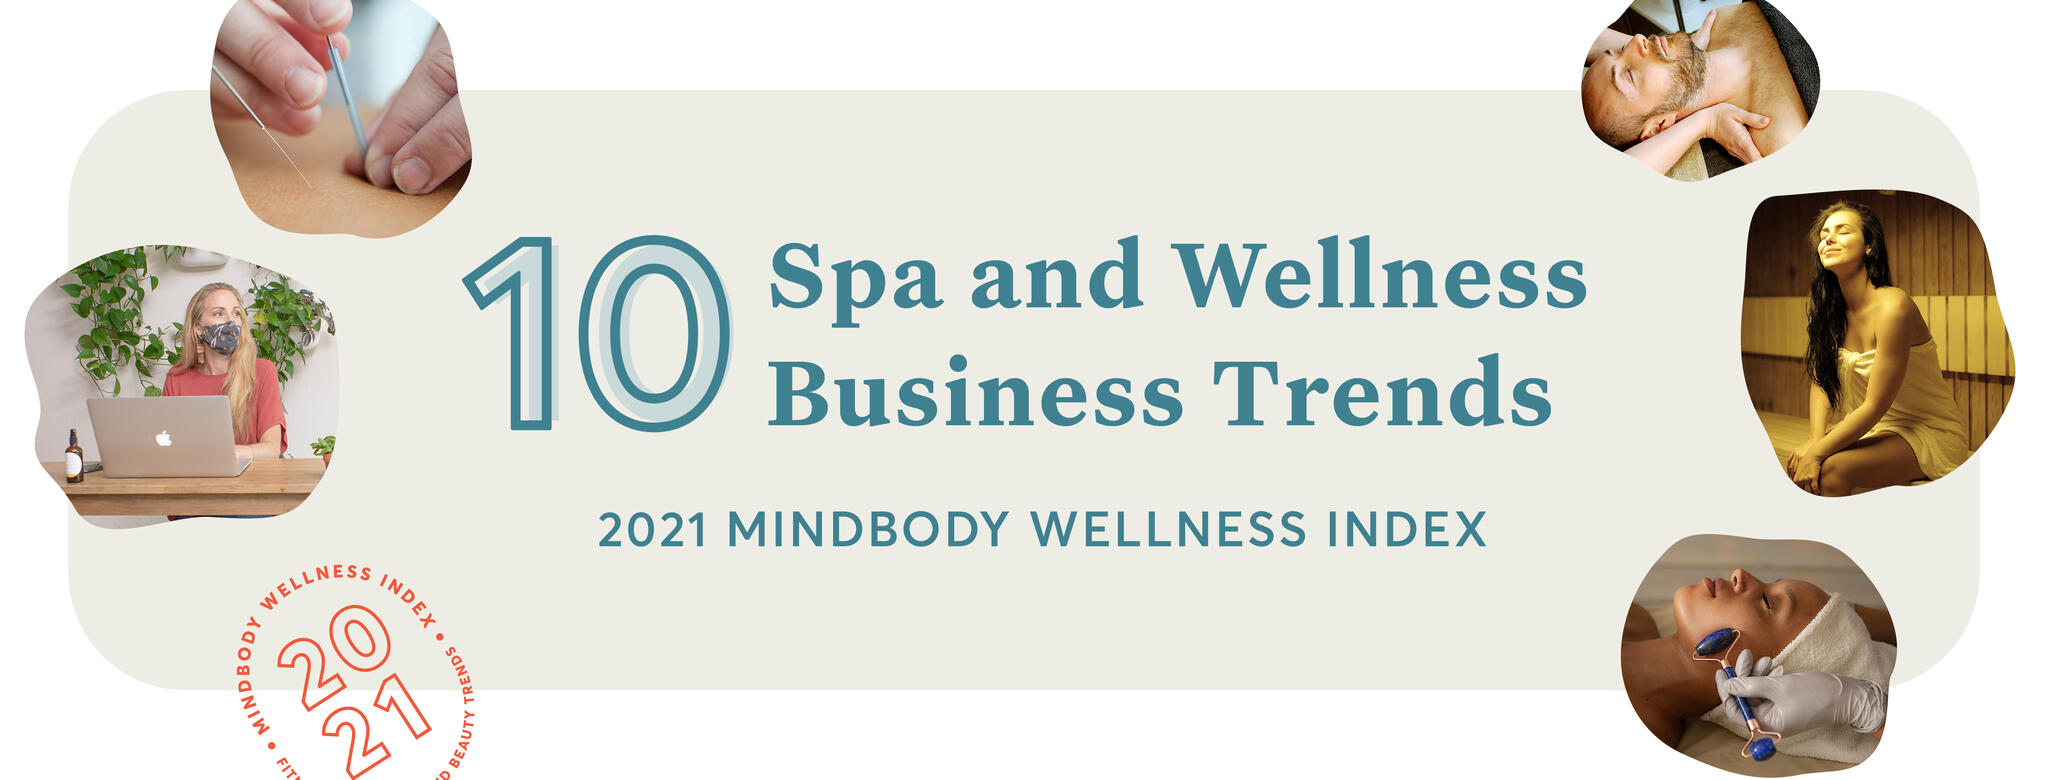 10 Spa and Wellness Business Trends